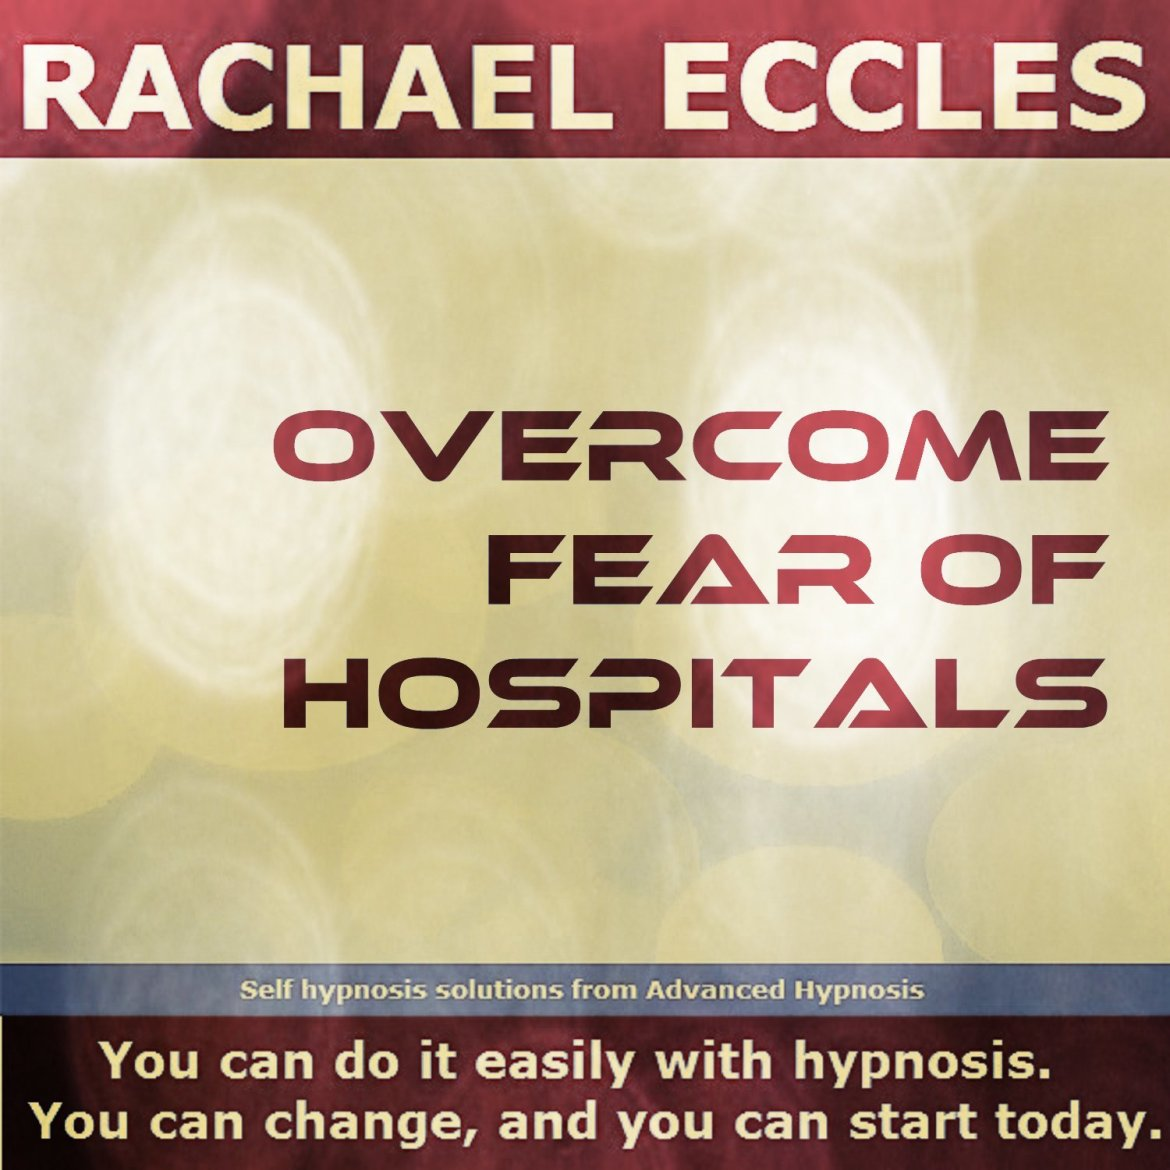 Overcome Fear of Hospitals, Nosocomephobia Self Hypnosis Hypnotherapy MP3 Download